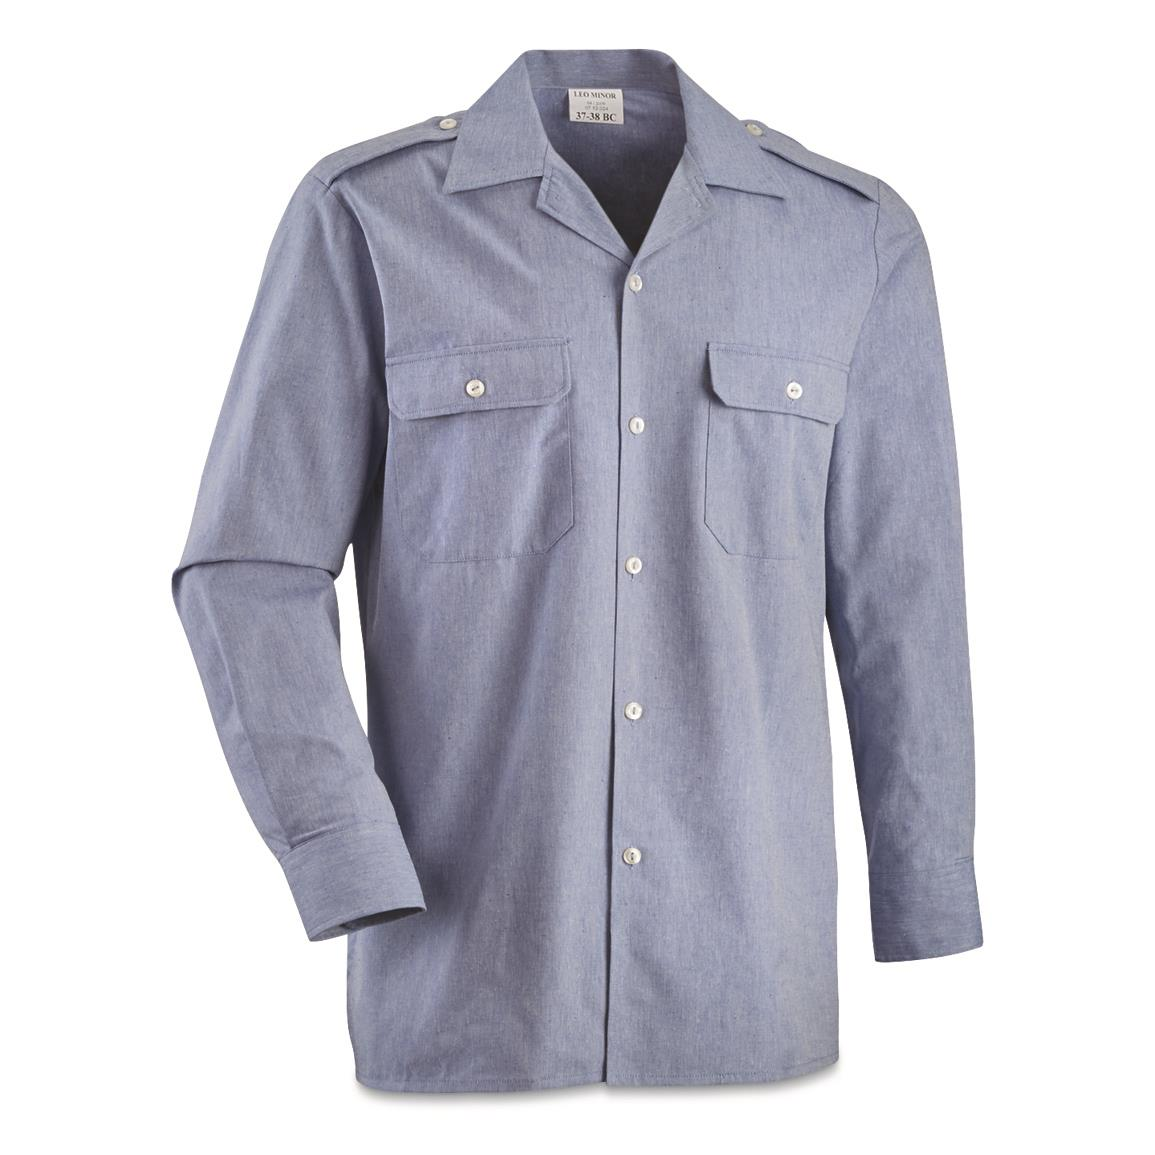 French Military Surplus Long Sleeve Service Shirt, New, Blue